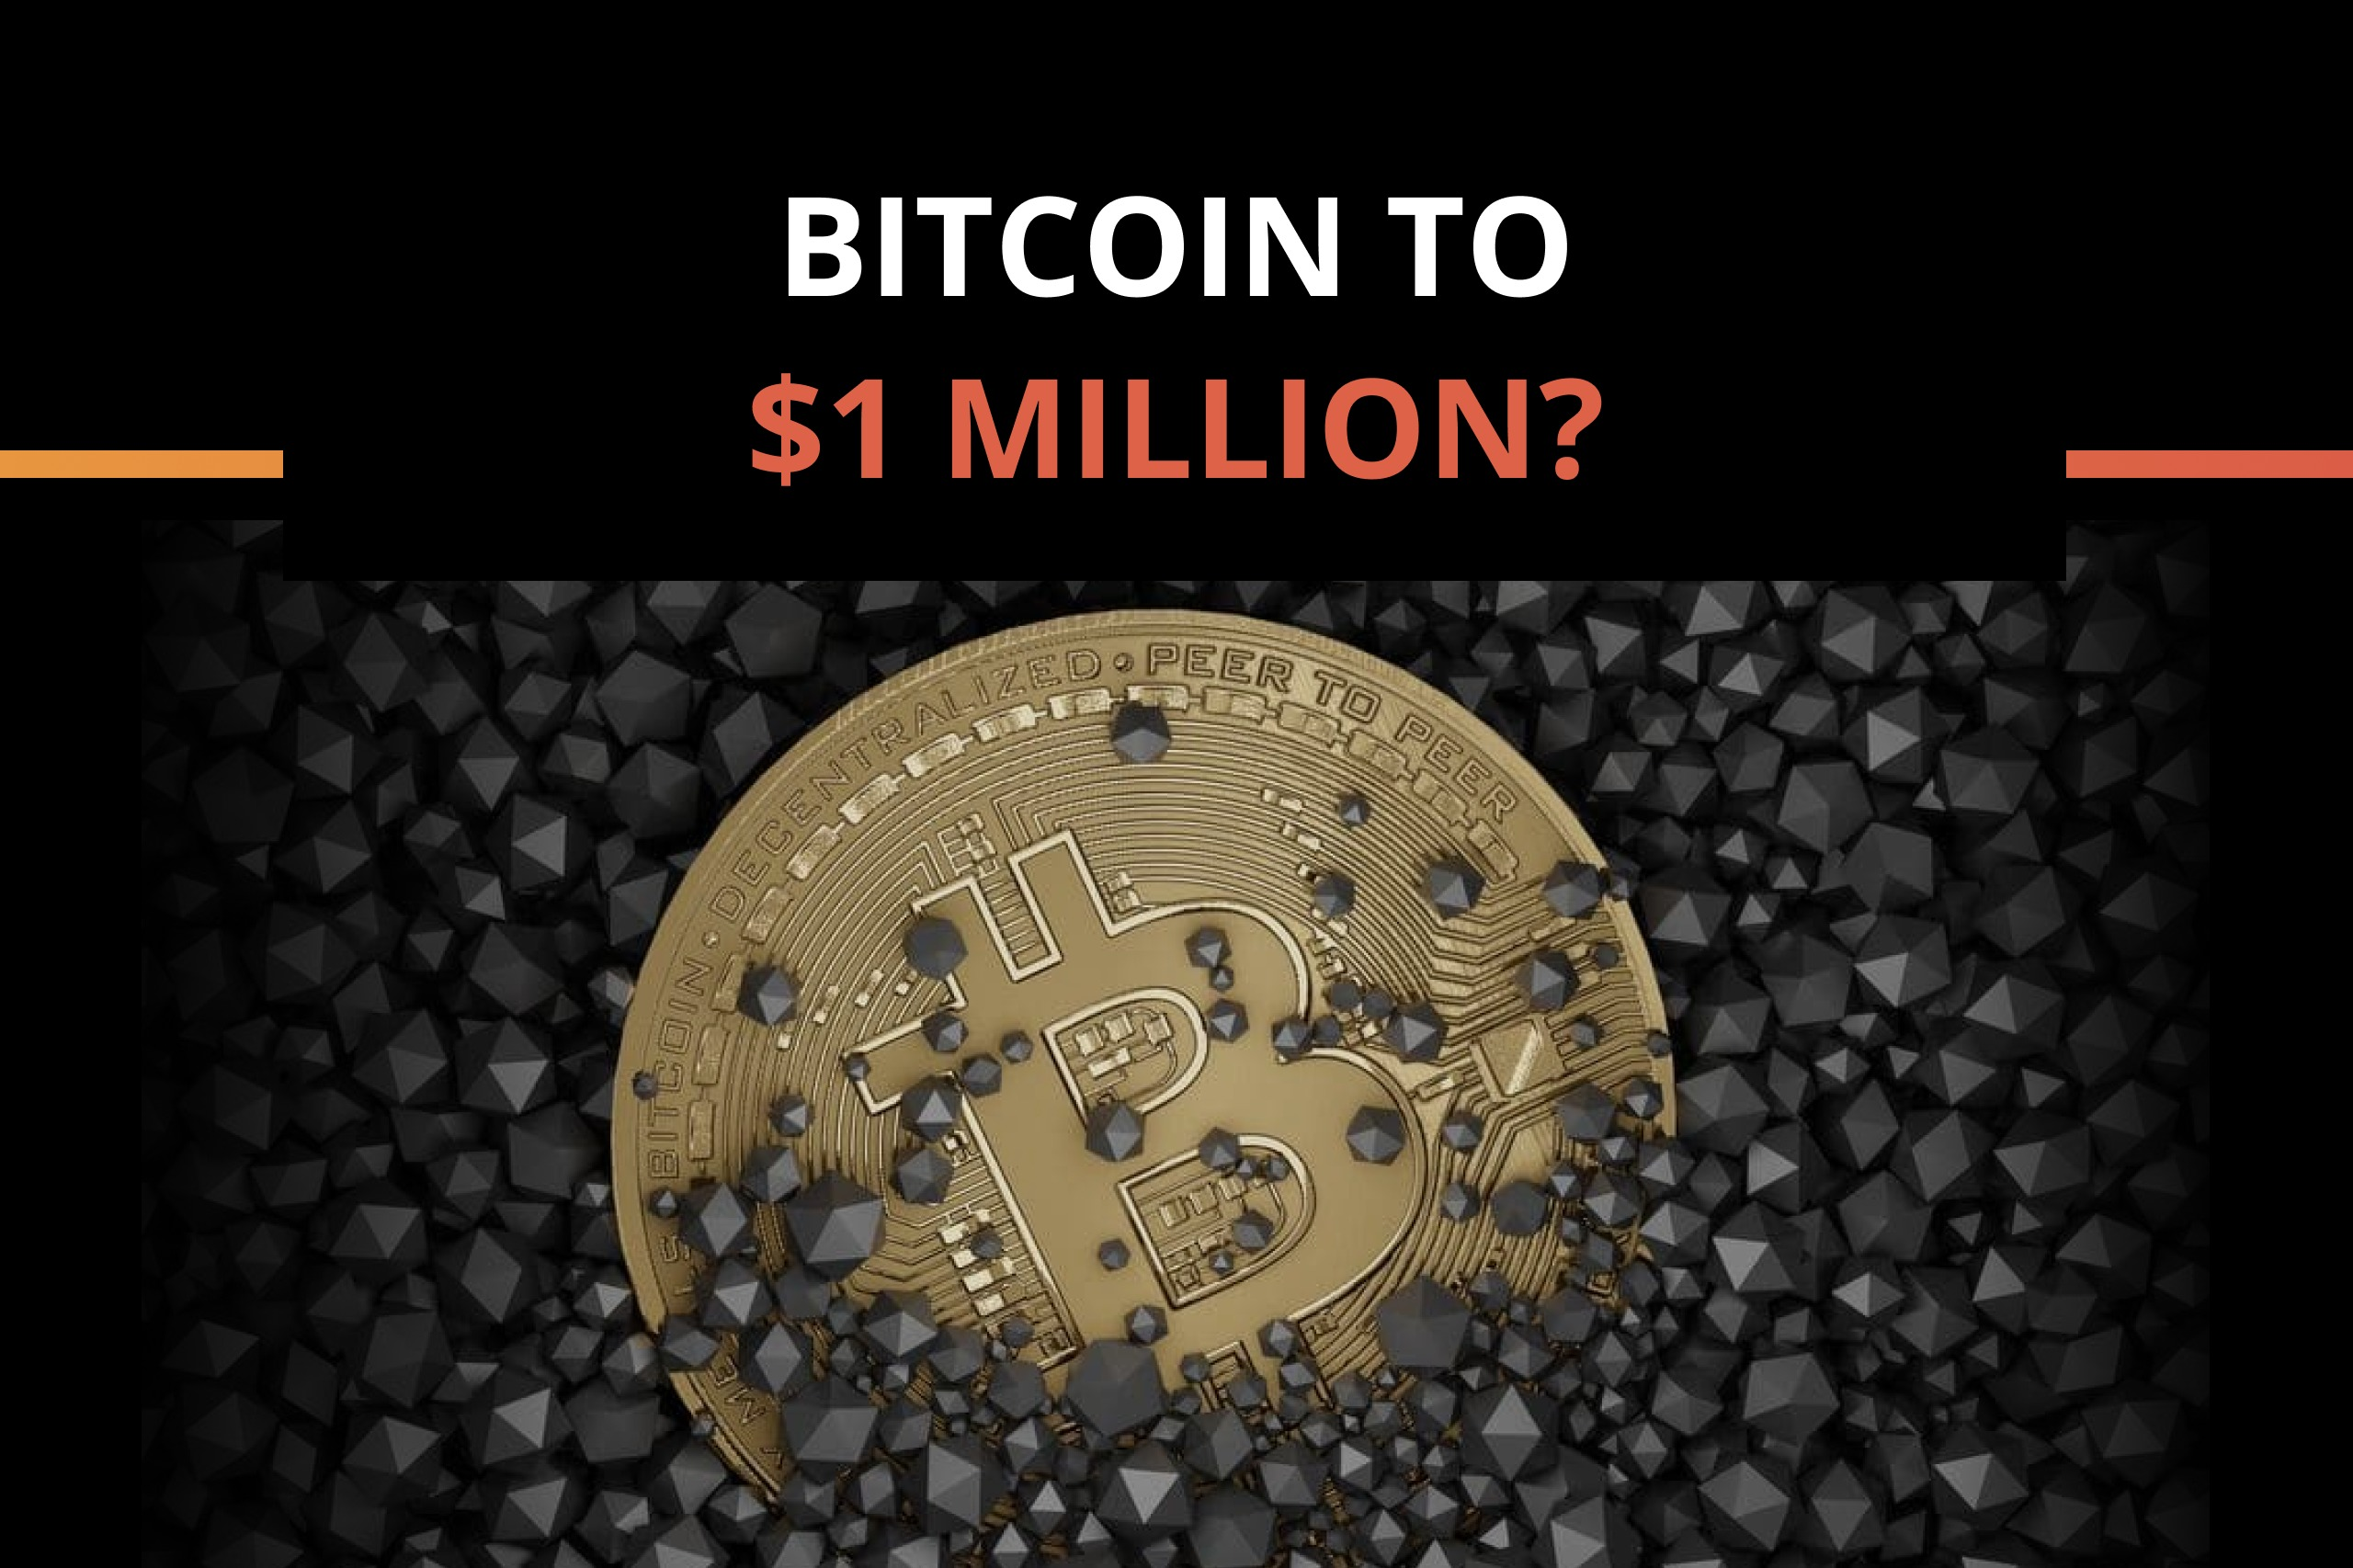 Bitcoin will eventually be a global currency